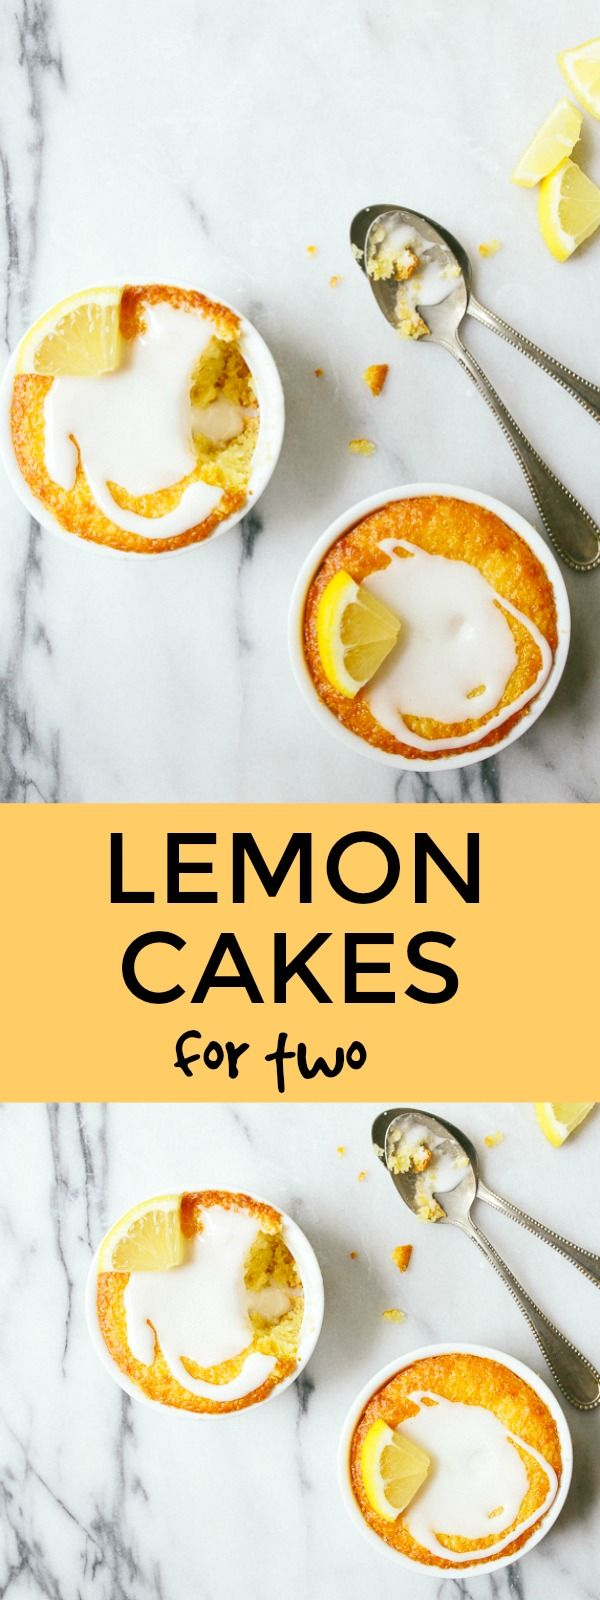 Mini lemon cakes for two baked in a ramekin. Small batch cake for two. Lemon desserts for two.